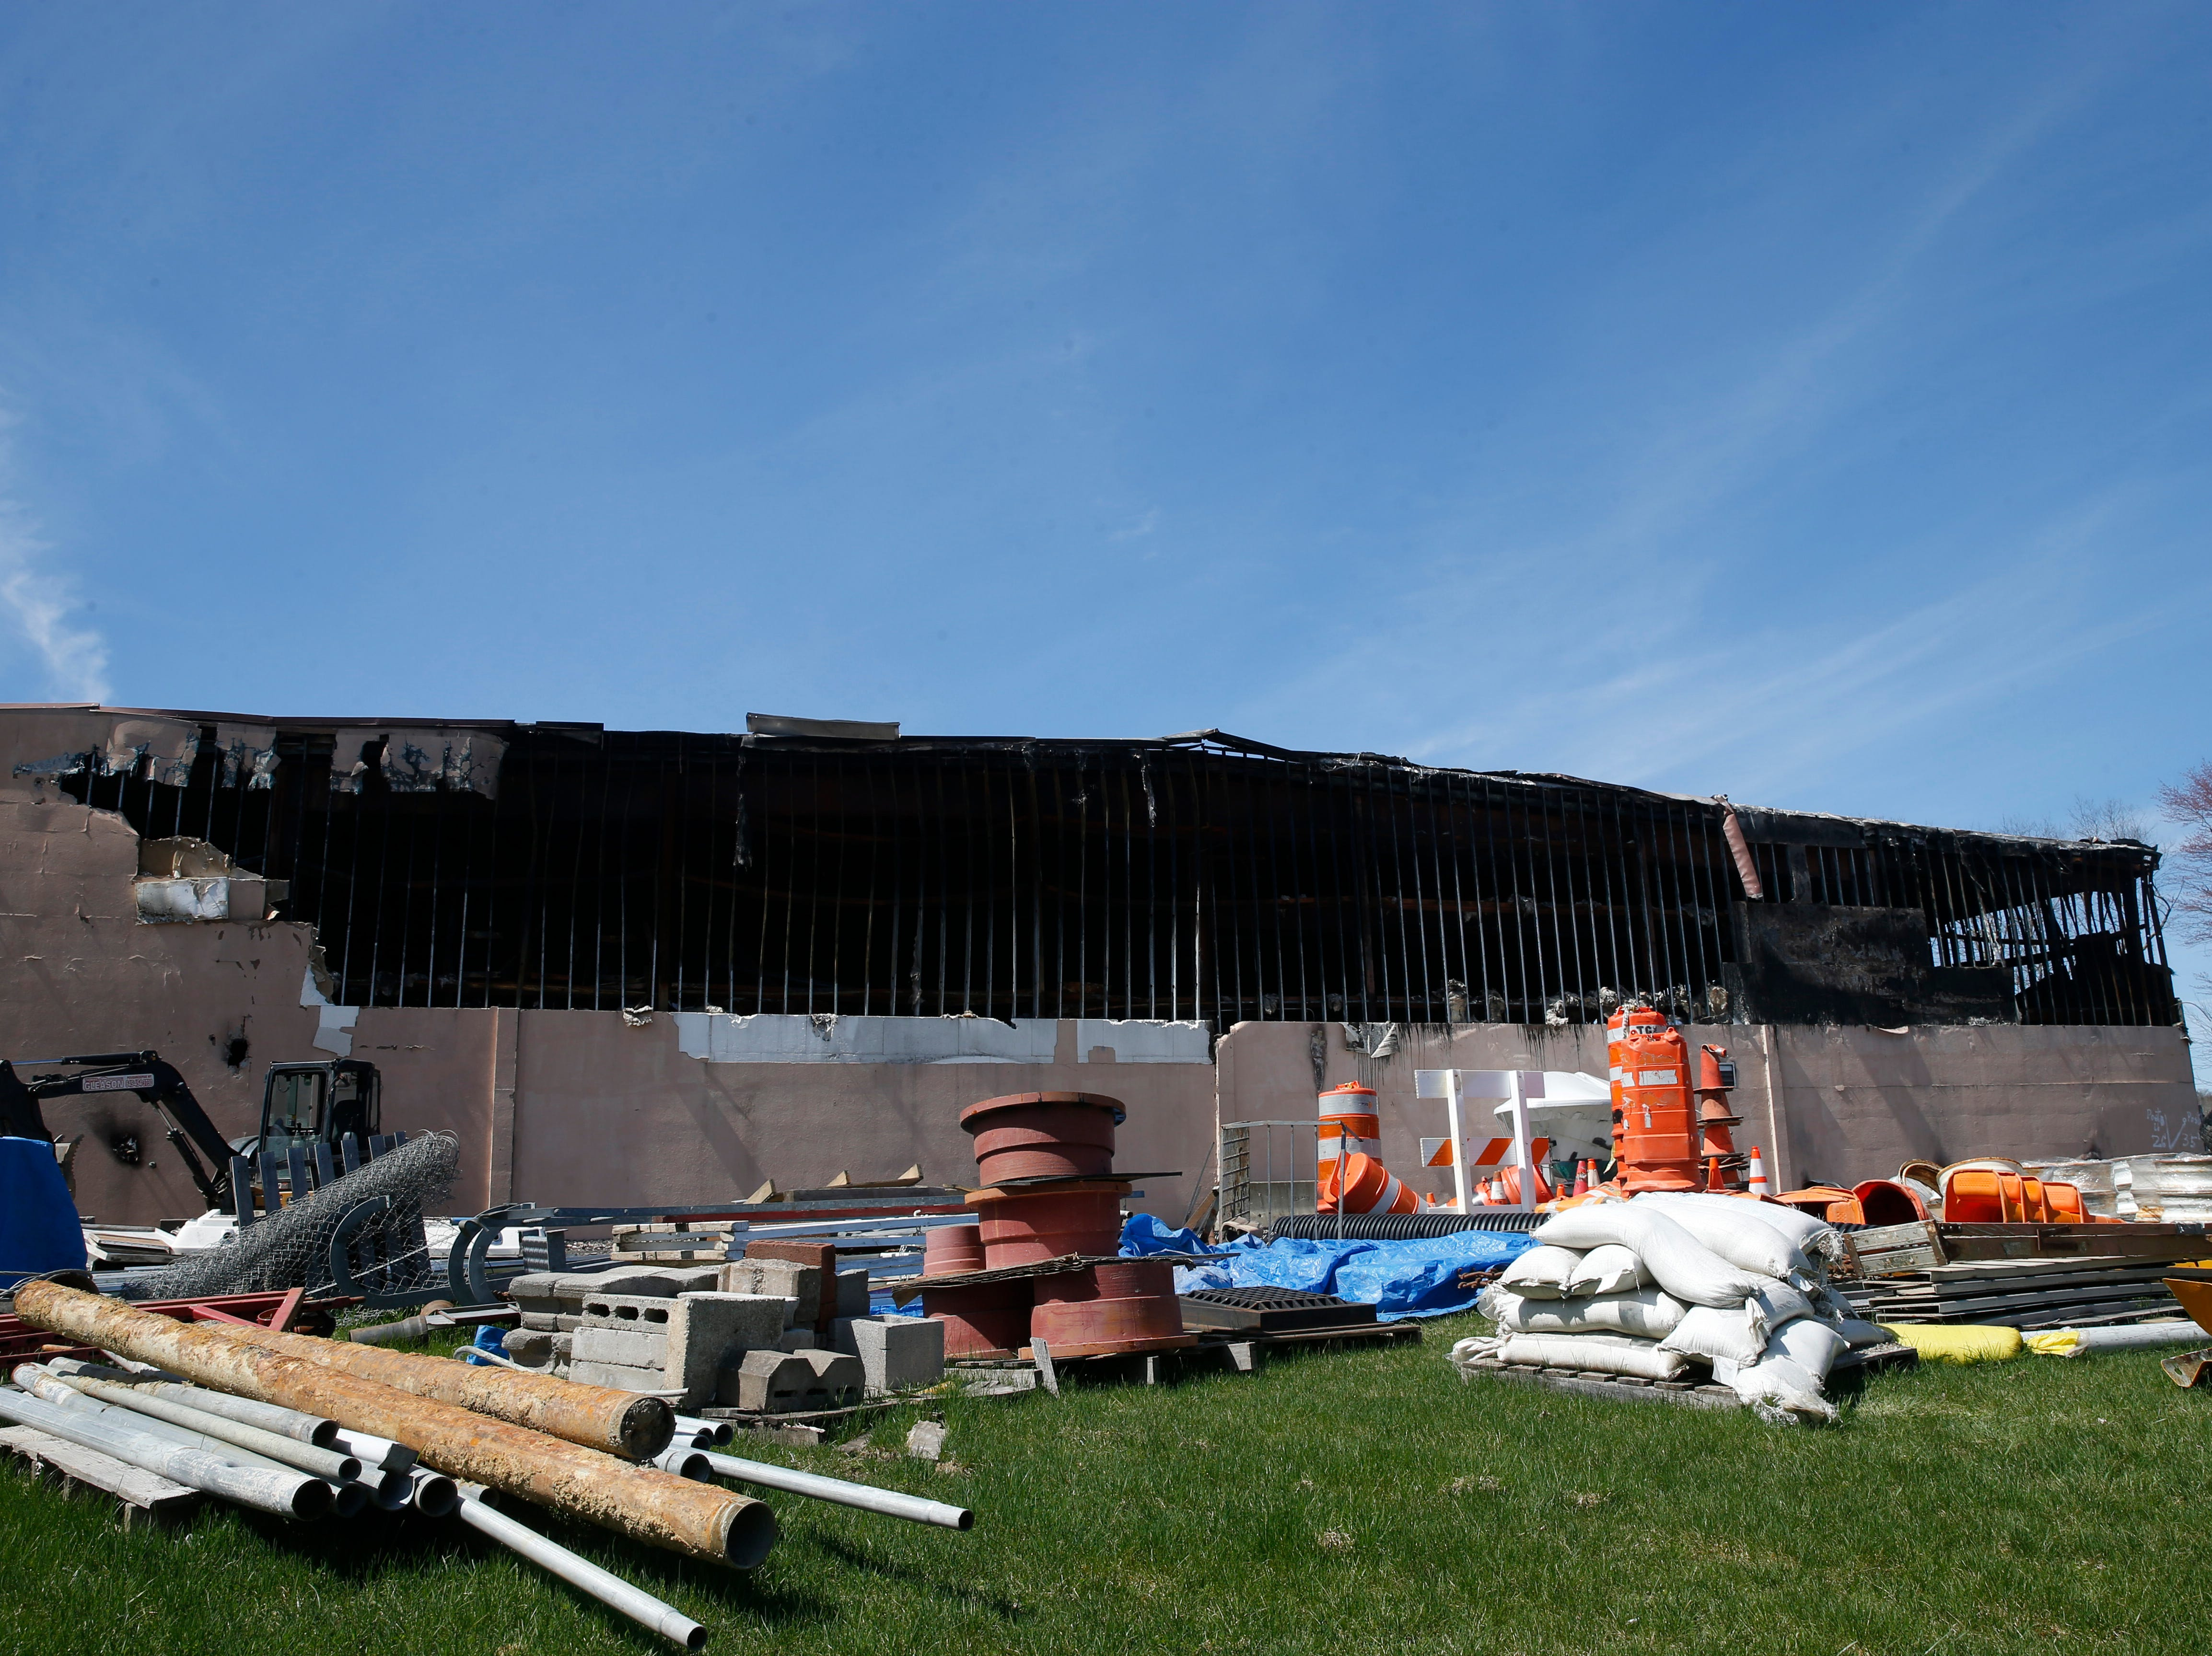 Gleason Incorporated's building in the Town of Poughkeepsie on April 17, 2019. A fire in March damaged the building beyond repair.  The Gleason family has recently been allowed to enter the structure to assess the damage and discover what was destroyed.